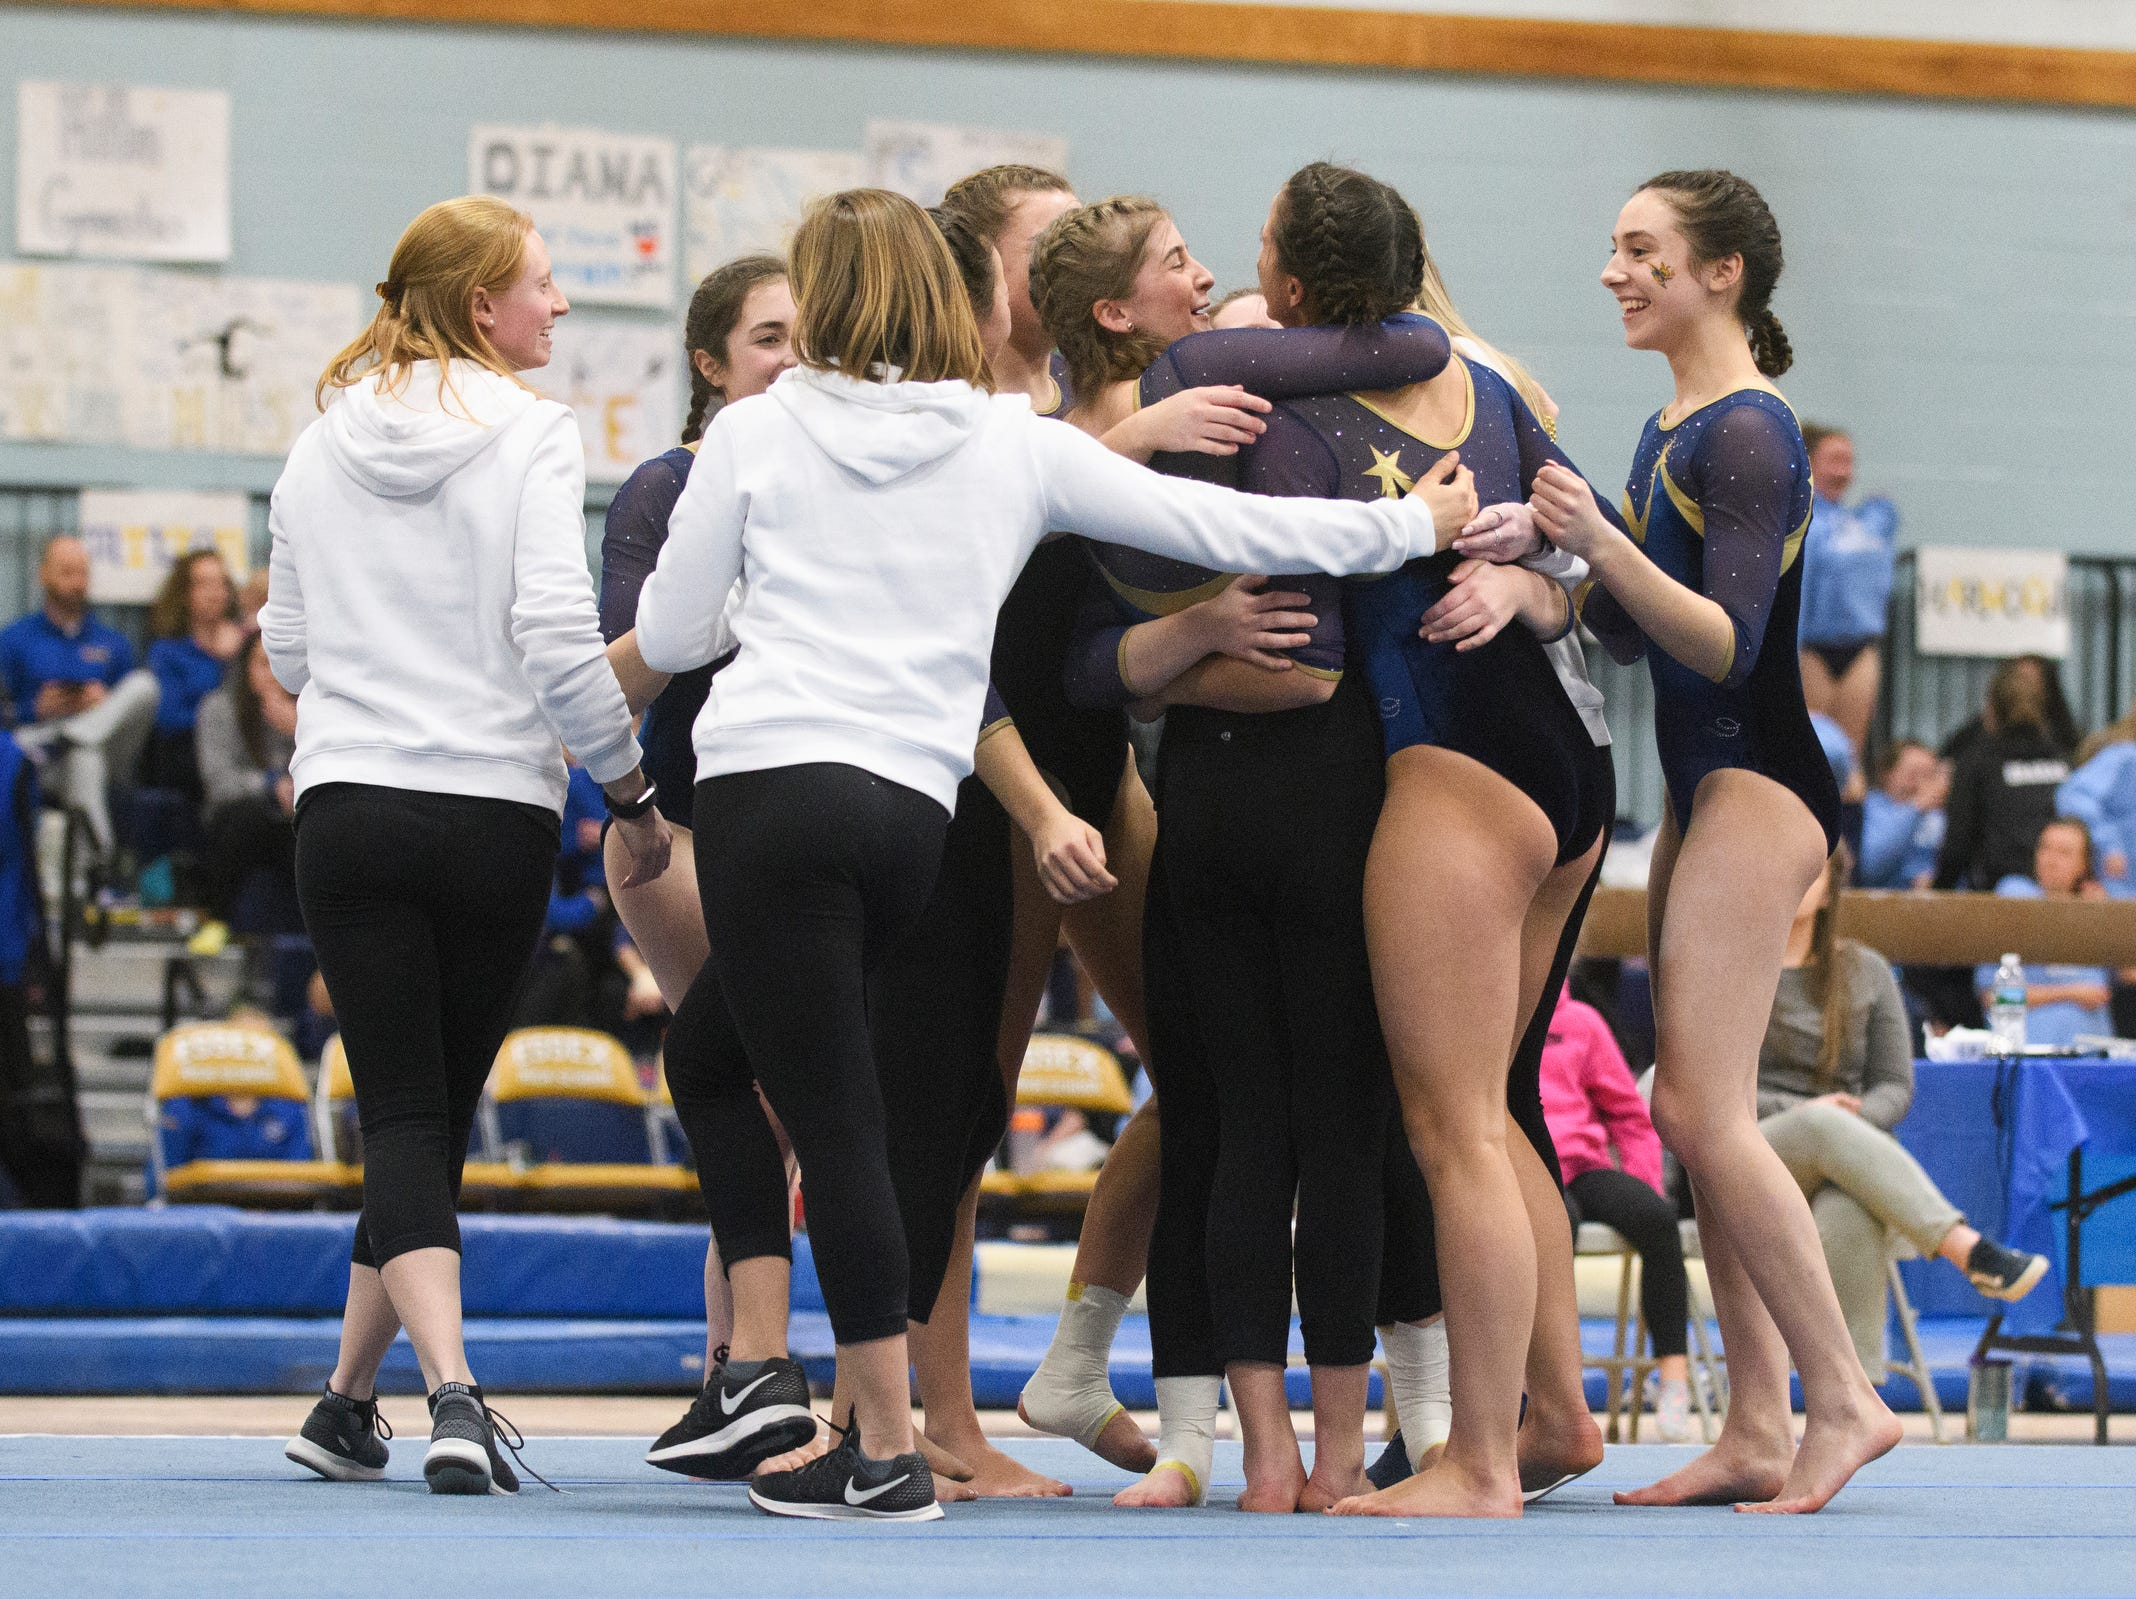 The Essex team hugs Abigail Gleason after her routine during the 2019 high school gymnastics championship at Essex High School on Saturday afternoon February 16, 2019 in Essex, Vermont.